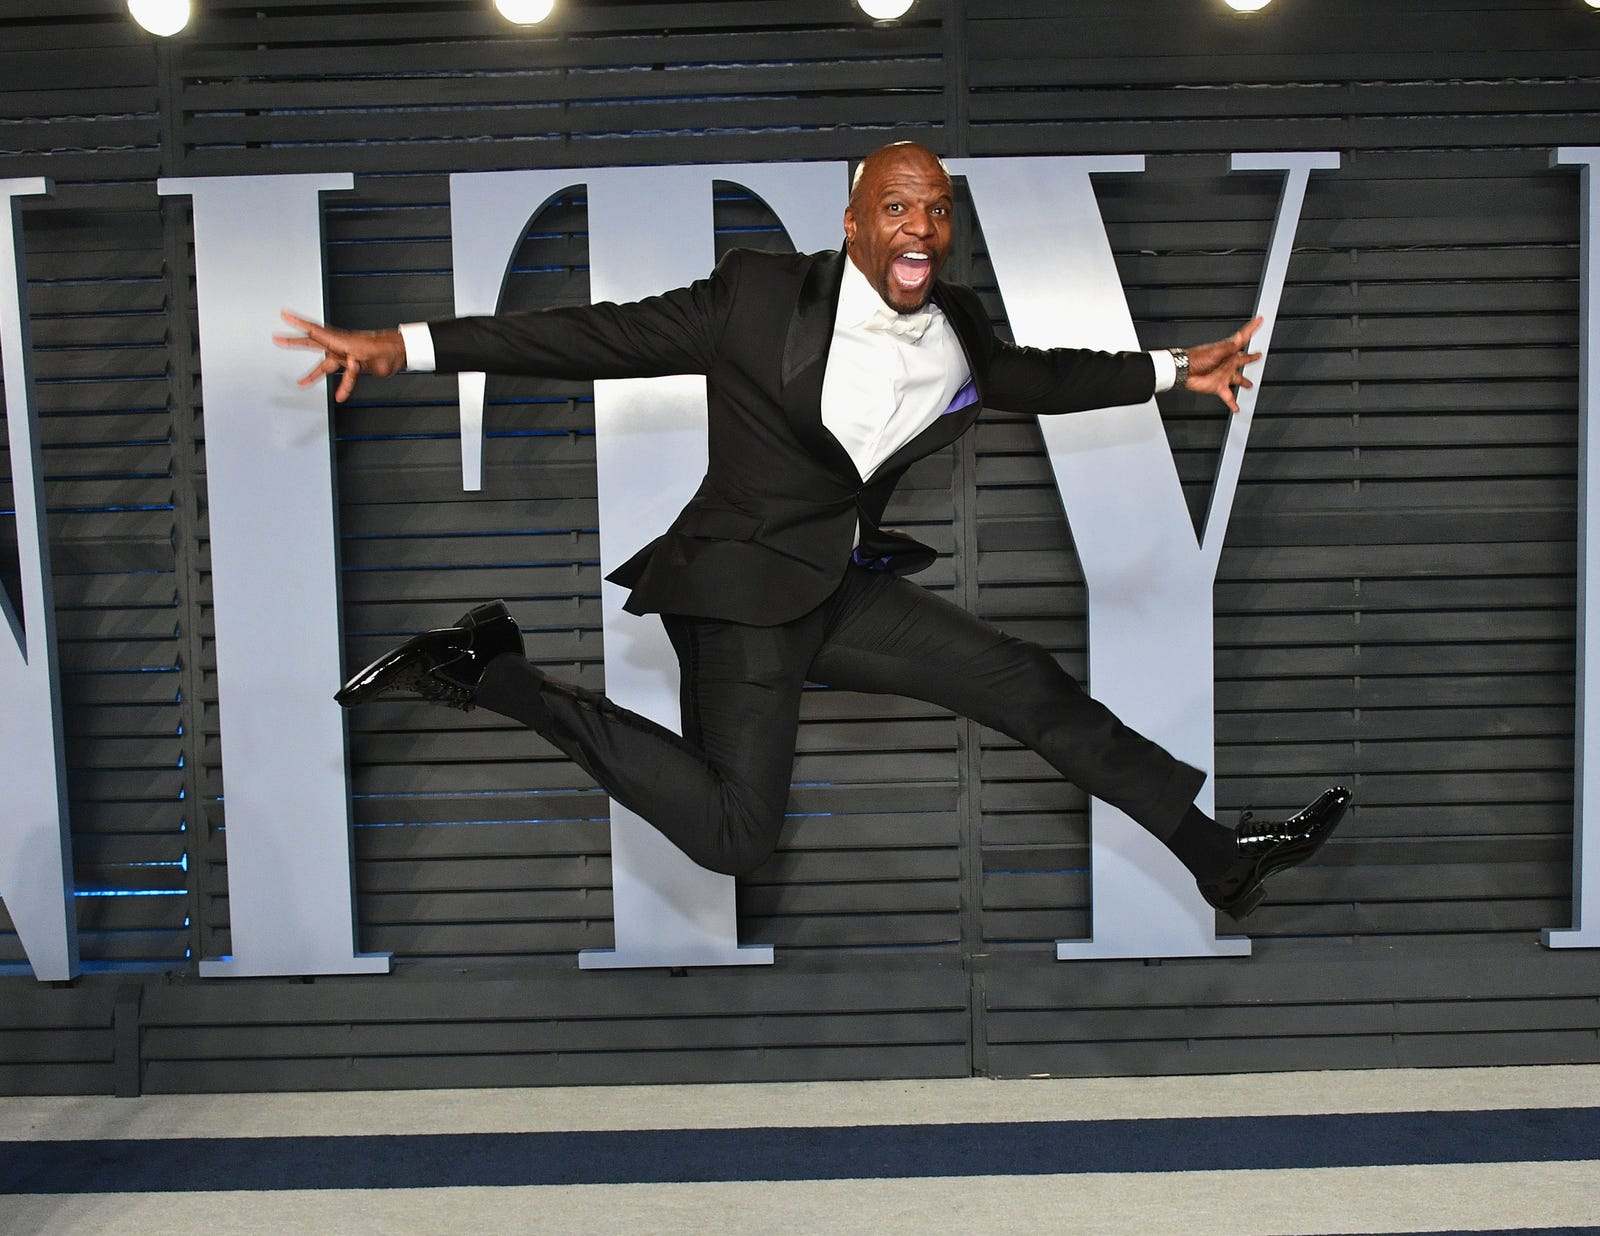 Terry Crews catches some air. (Dia Dipasupil/Getty Images)